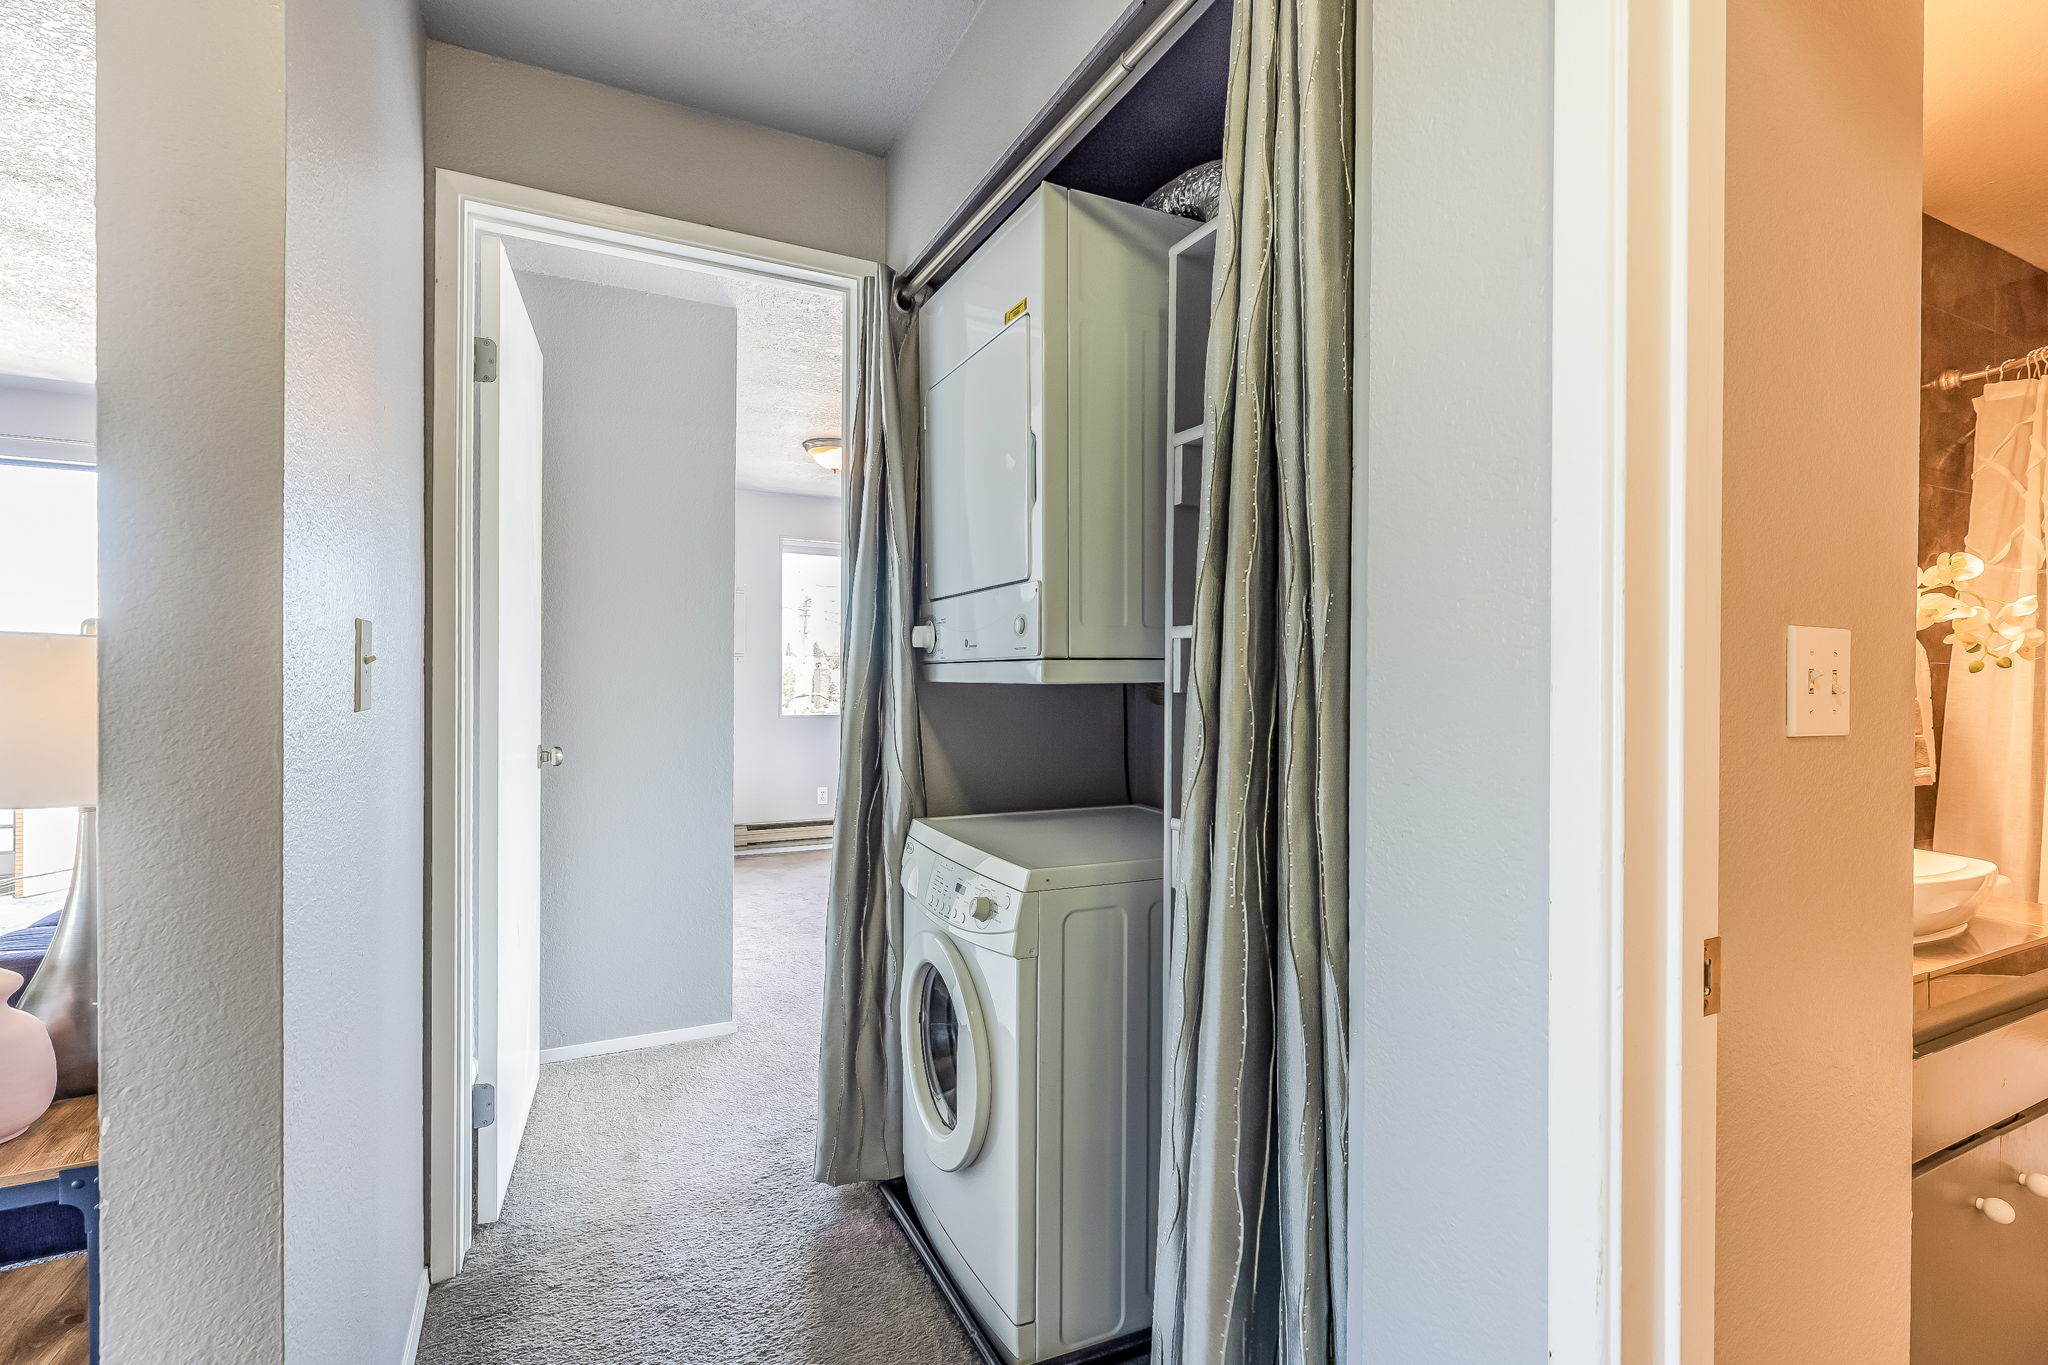 In unit washer and dryer with shelf space